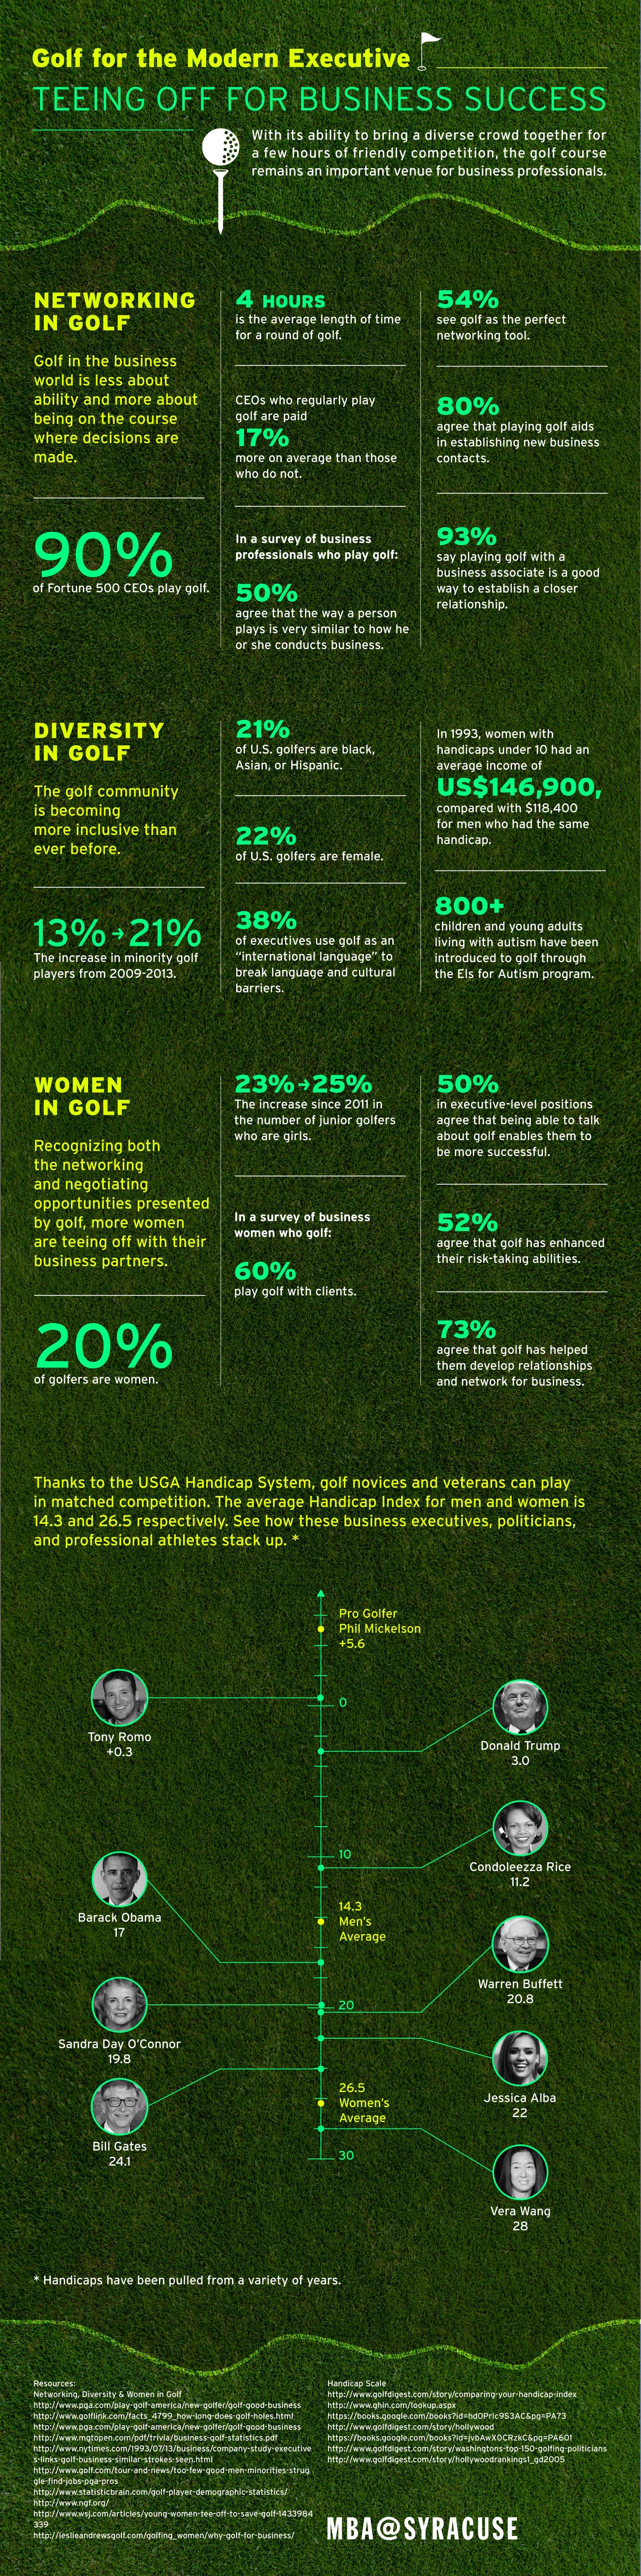 Data visualizations showing how golf is valuable to business professionals.